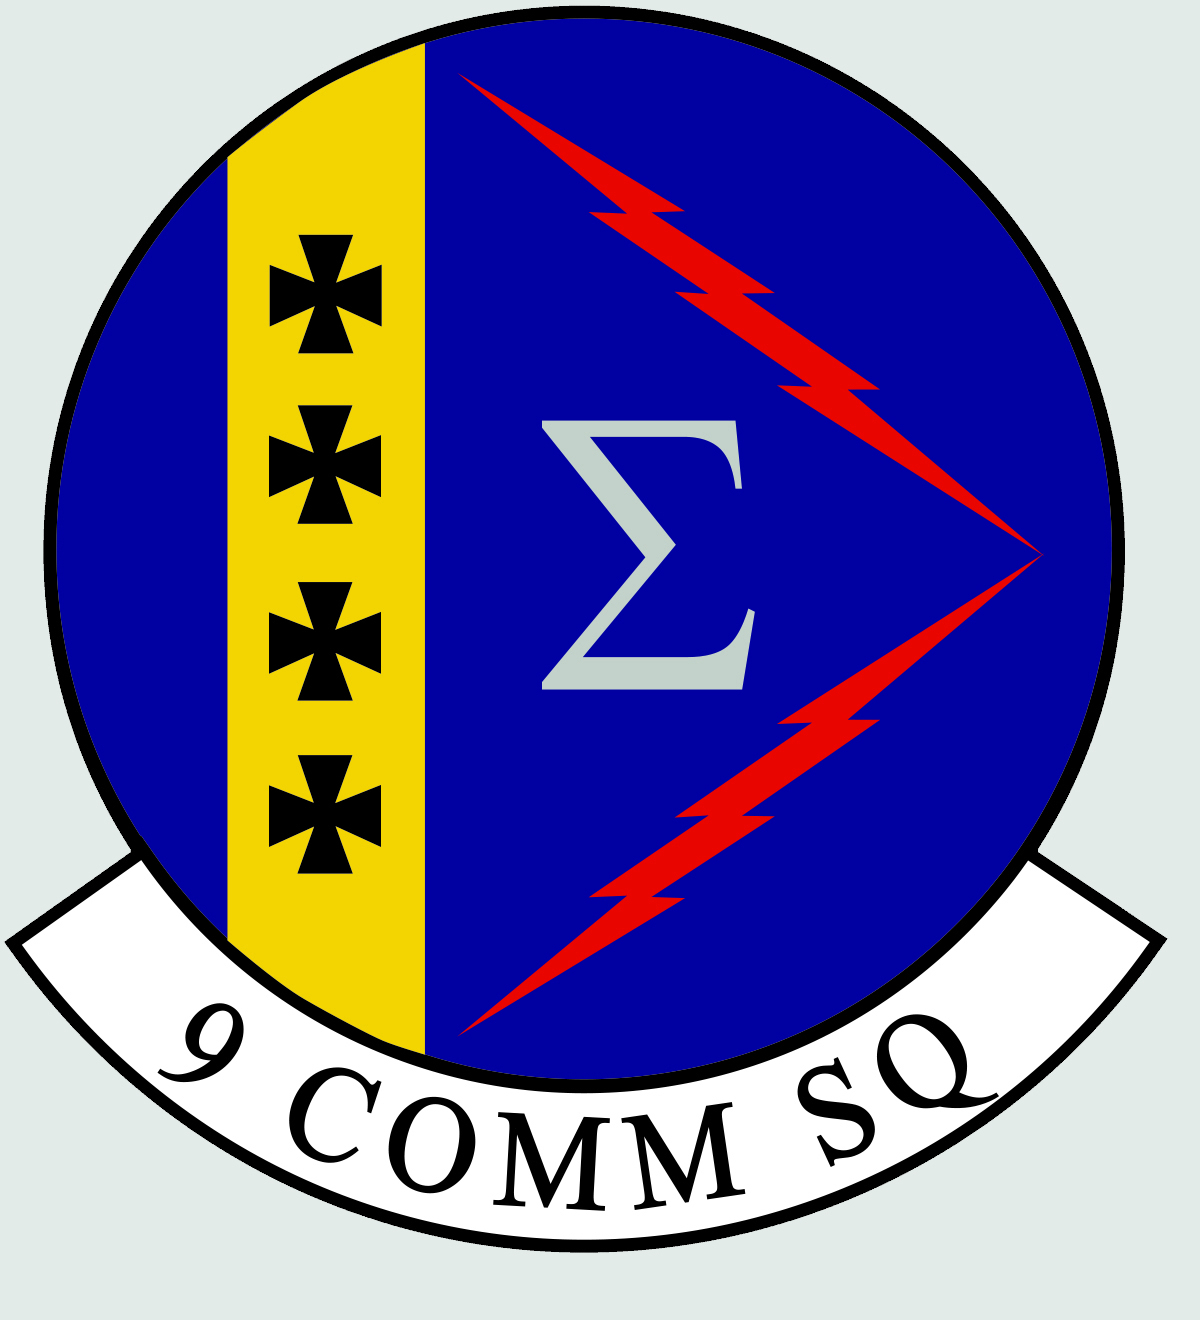 9th Communications Squadron